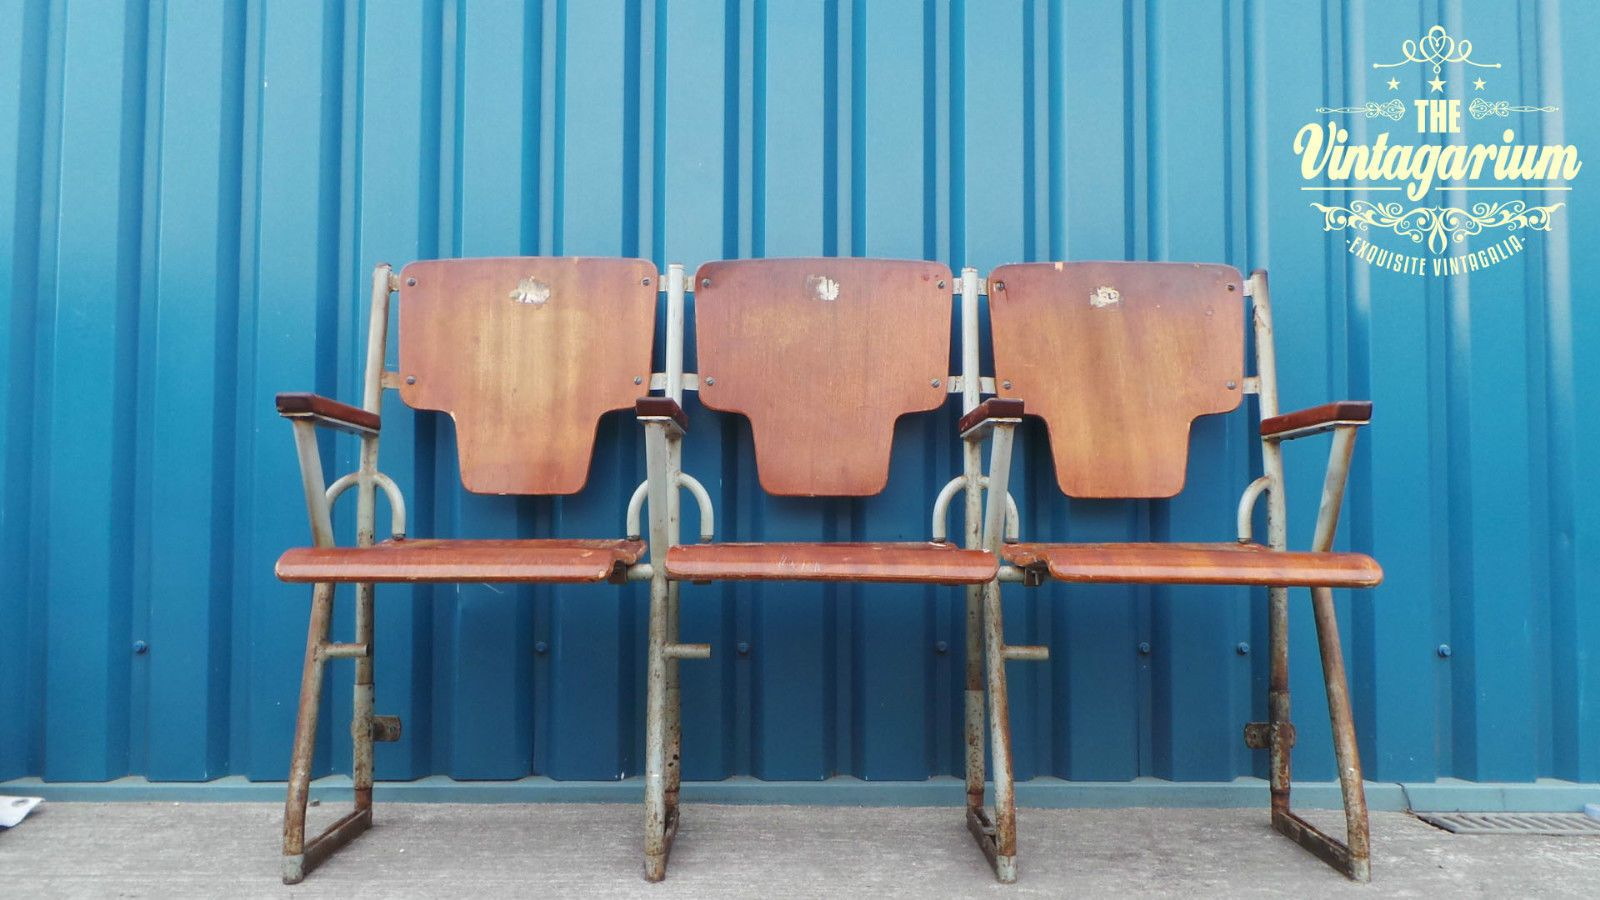 3 X Cinema Barber Shop Waiting Room Flip Up Seating Chairs Bench Ebay Antique Bench Chair Bench Bench